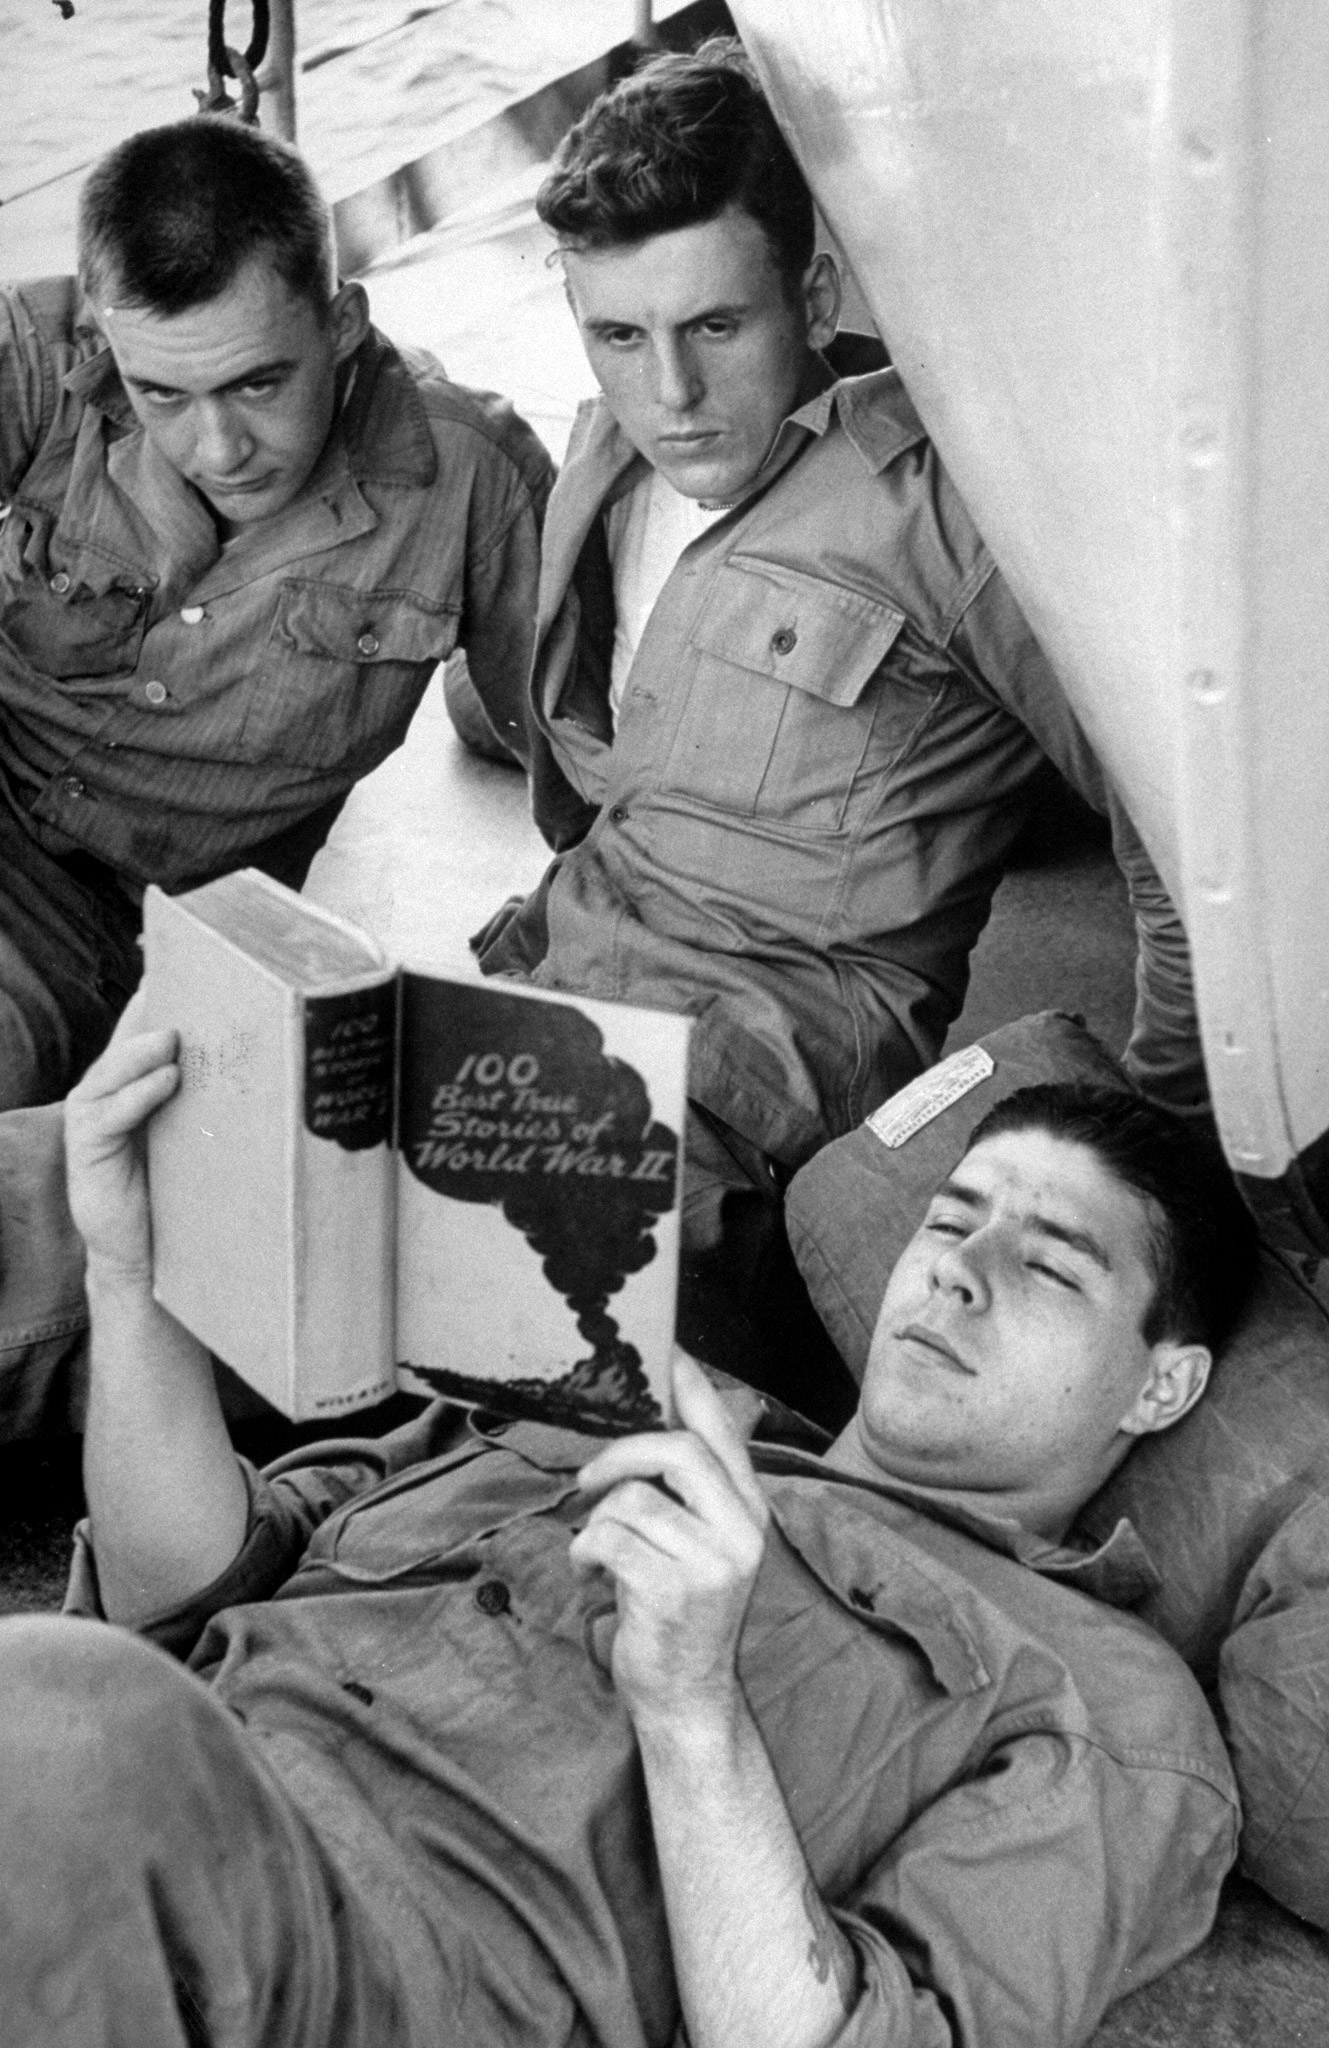 <b>Caption from LIFE.</b> Still in the dark about mission, GI's read about war they were too young to serve in.